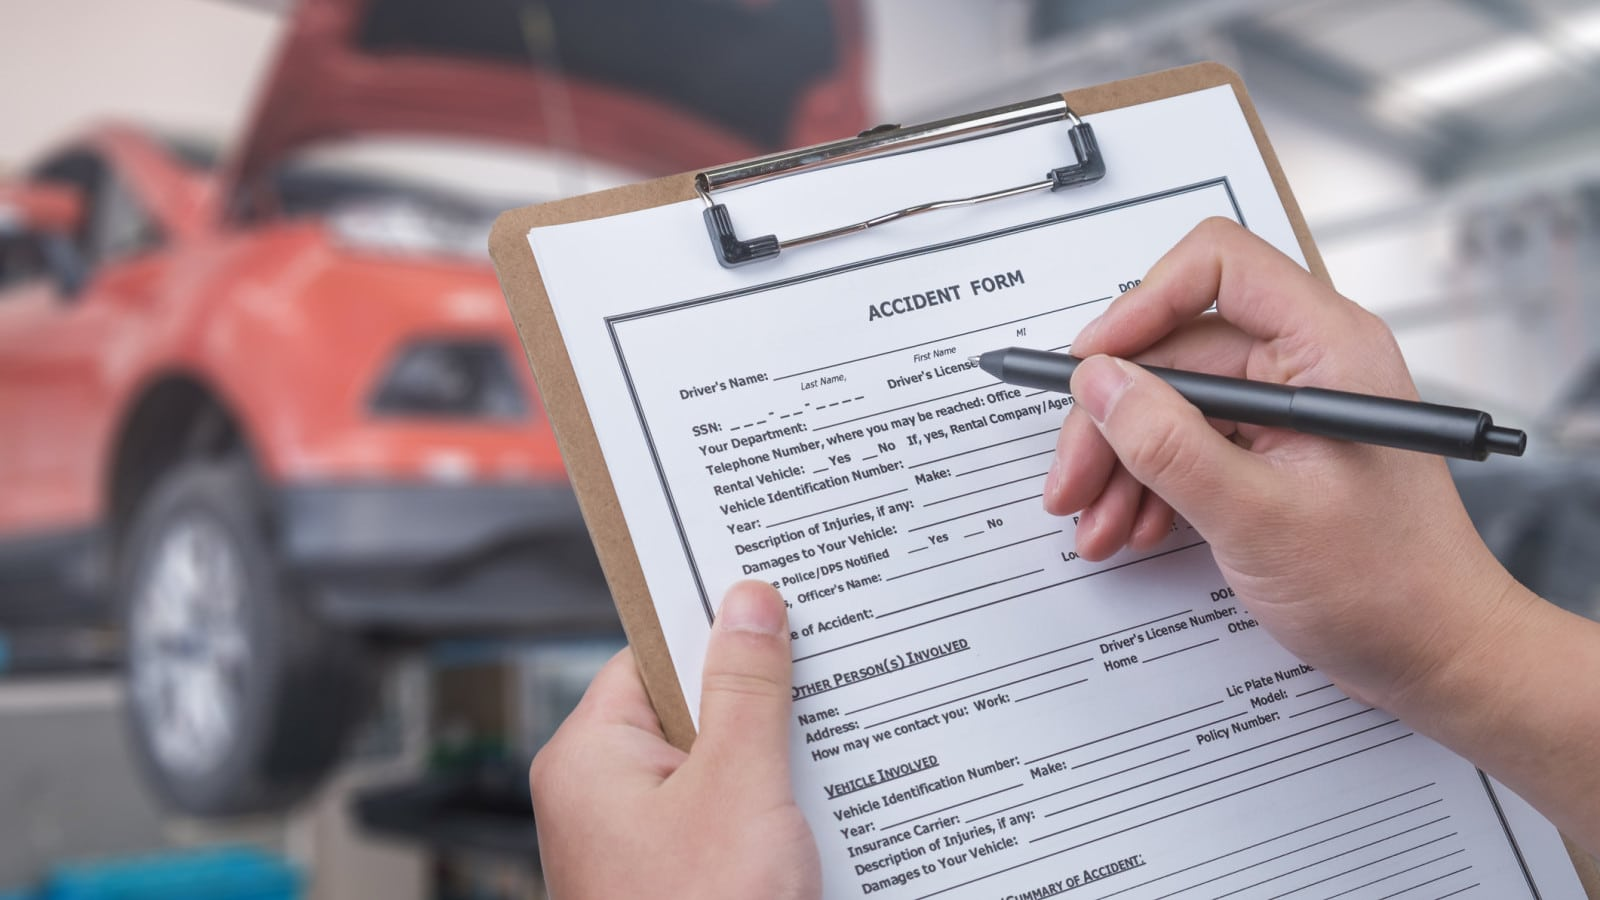 Filing Accident Form Stock Photo